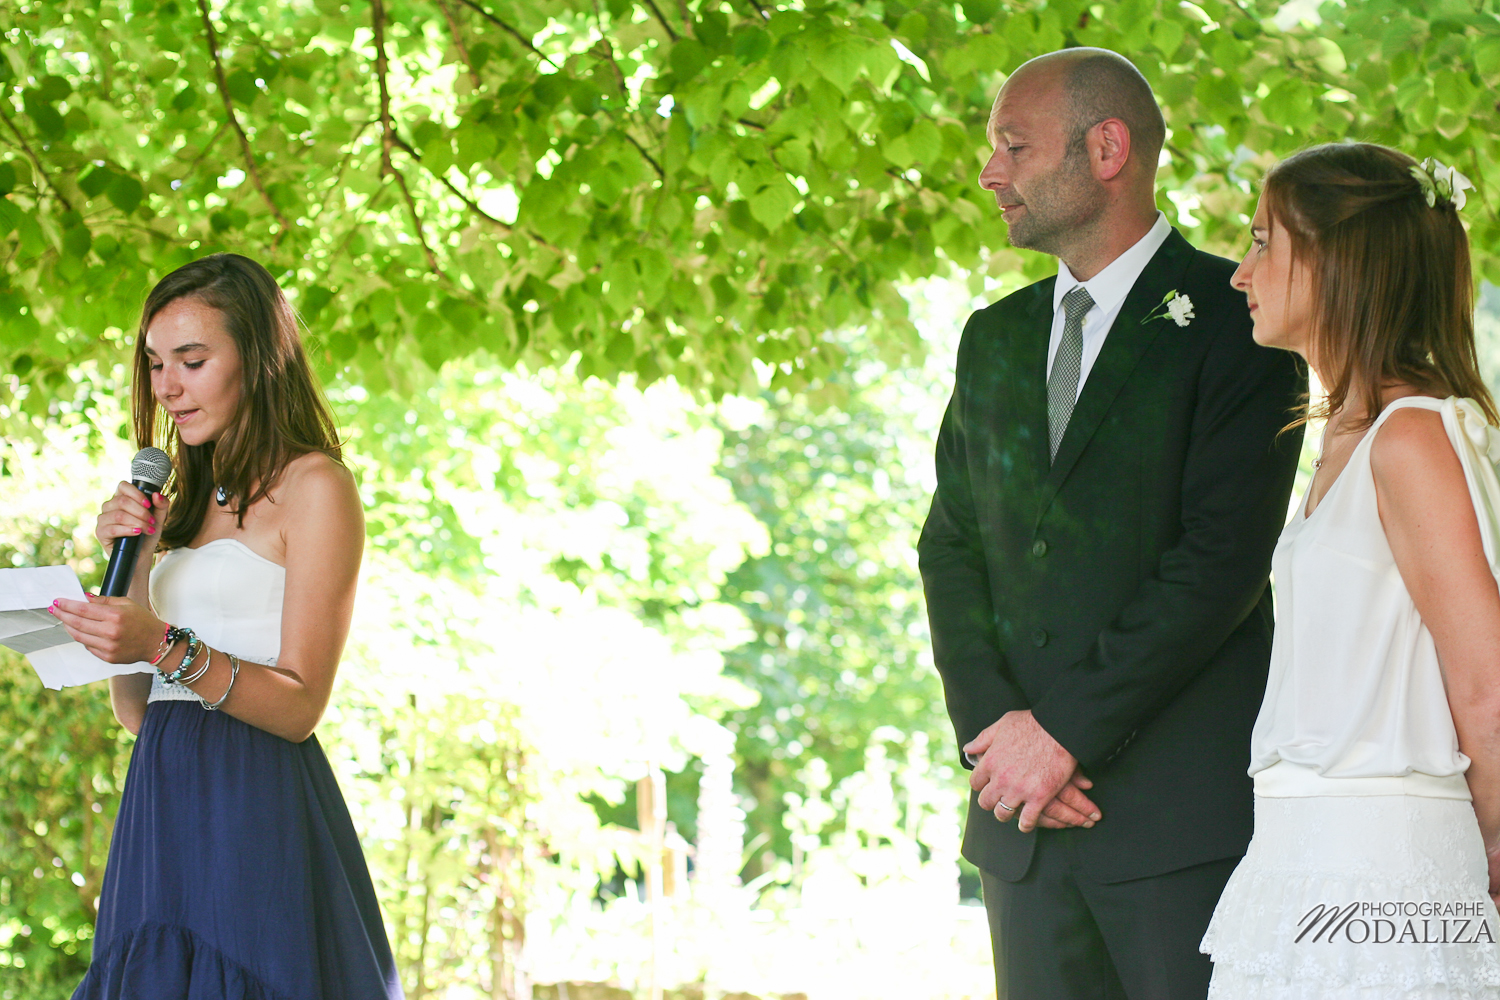 photo mariage temps spirituel ceremonie laique parc sous arbre by modaliza photographe-23